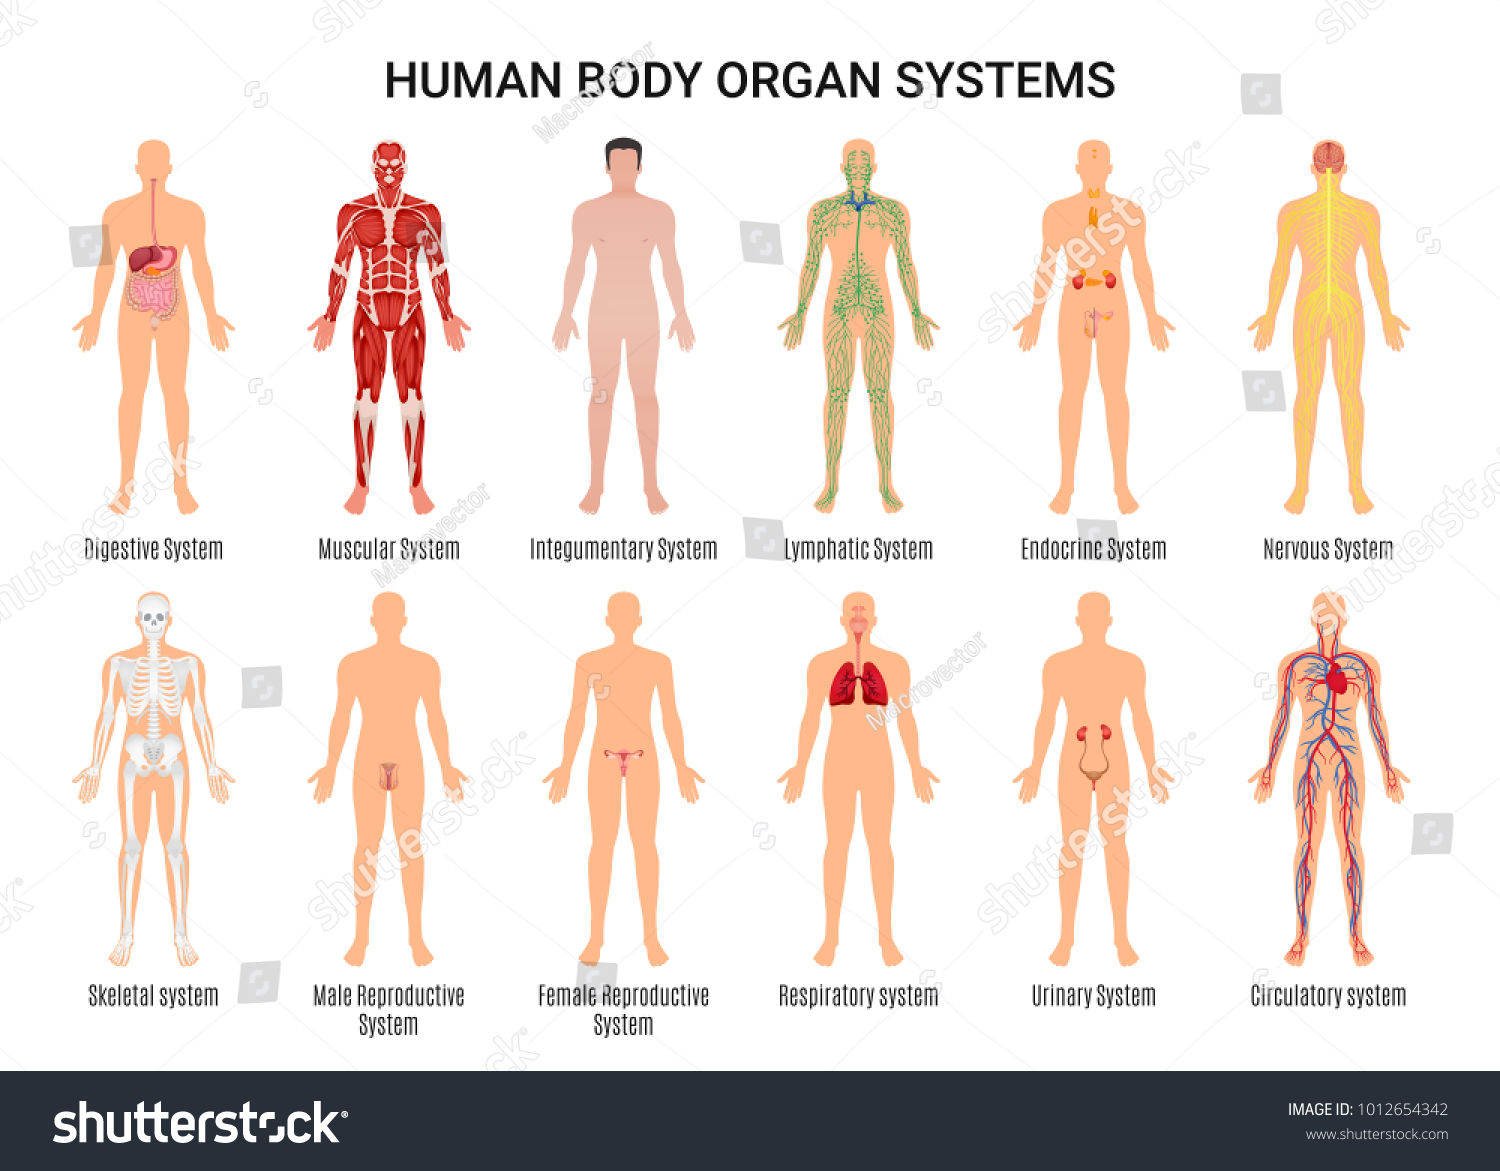 Main 12 Human Body Organ Systems Stock Vector 2018 1012654342